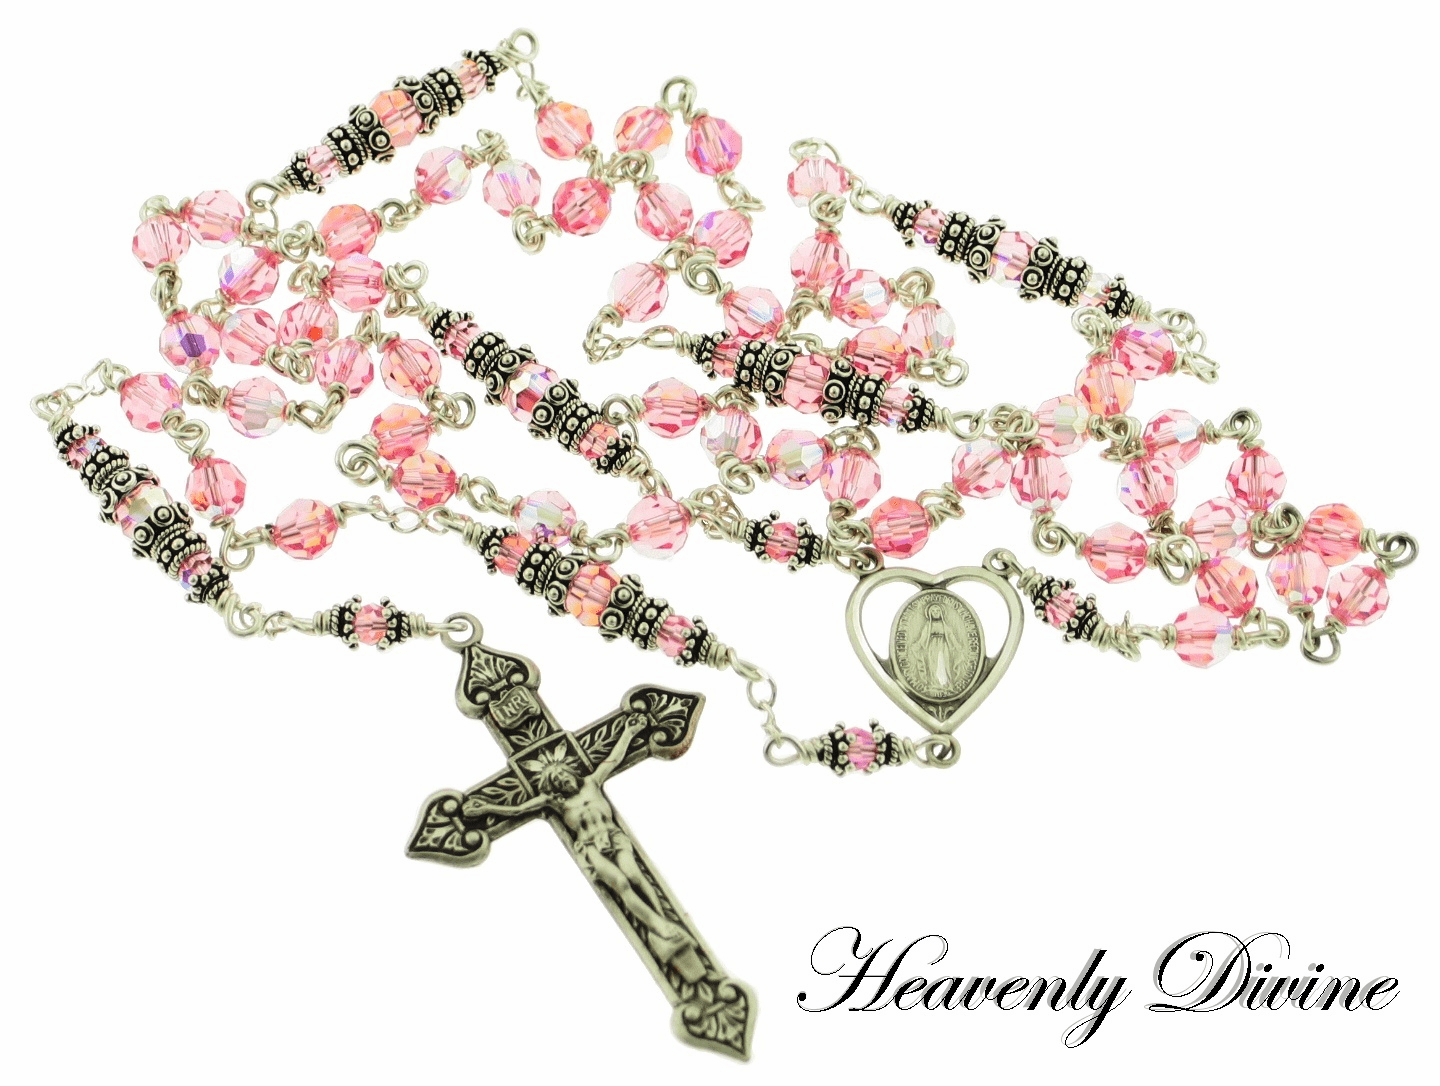 Handmade Heart Lt Rose Swarovski Crystal Sterling Rosary by Heavenly Divine